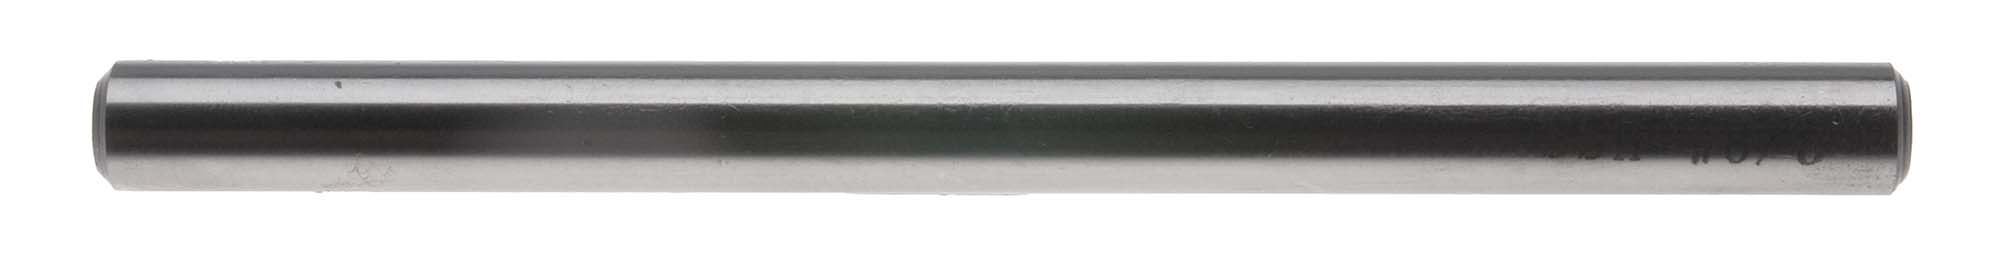 "#24 (.1520"") Jobber Length Drill Blank, High Speed Steel"